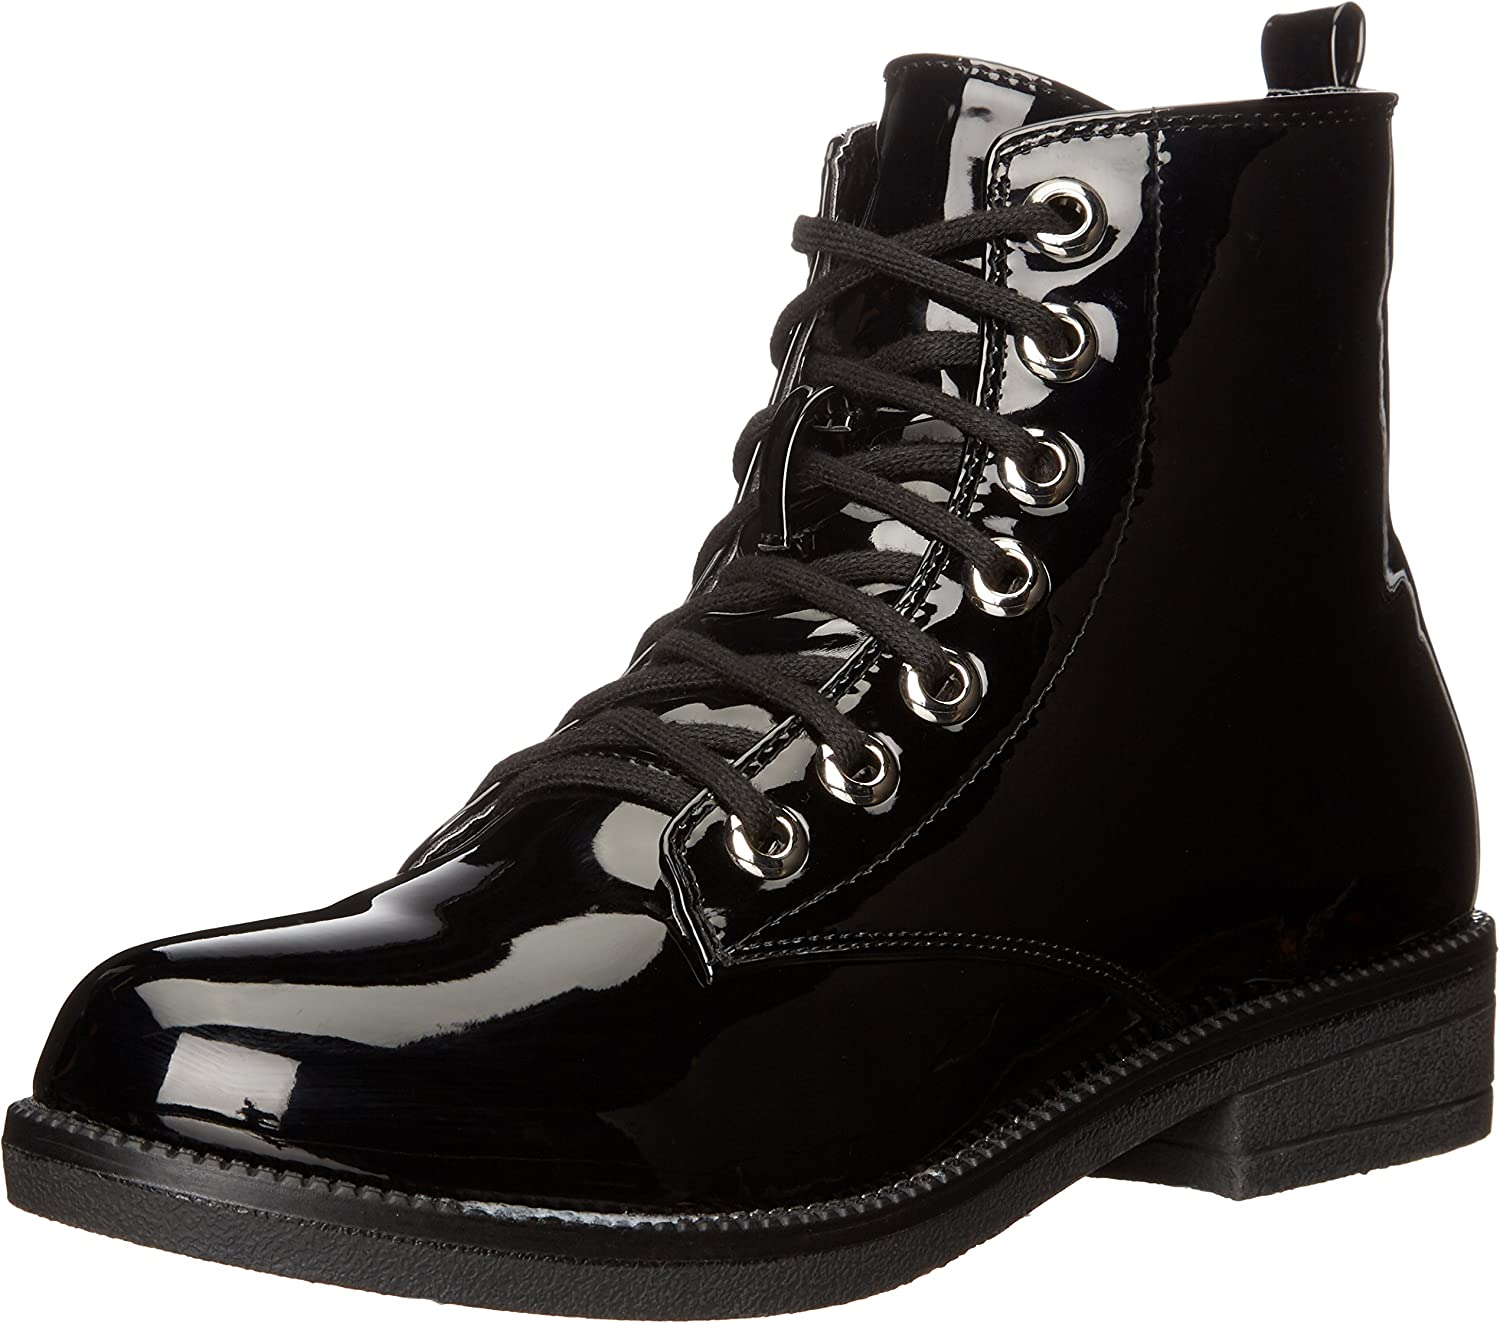 Dirty Laundry by Chinese Laundry Women's Stefan Boot